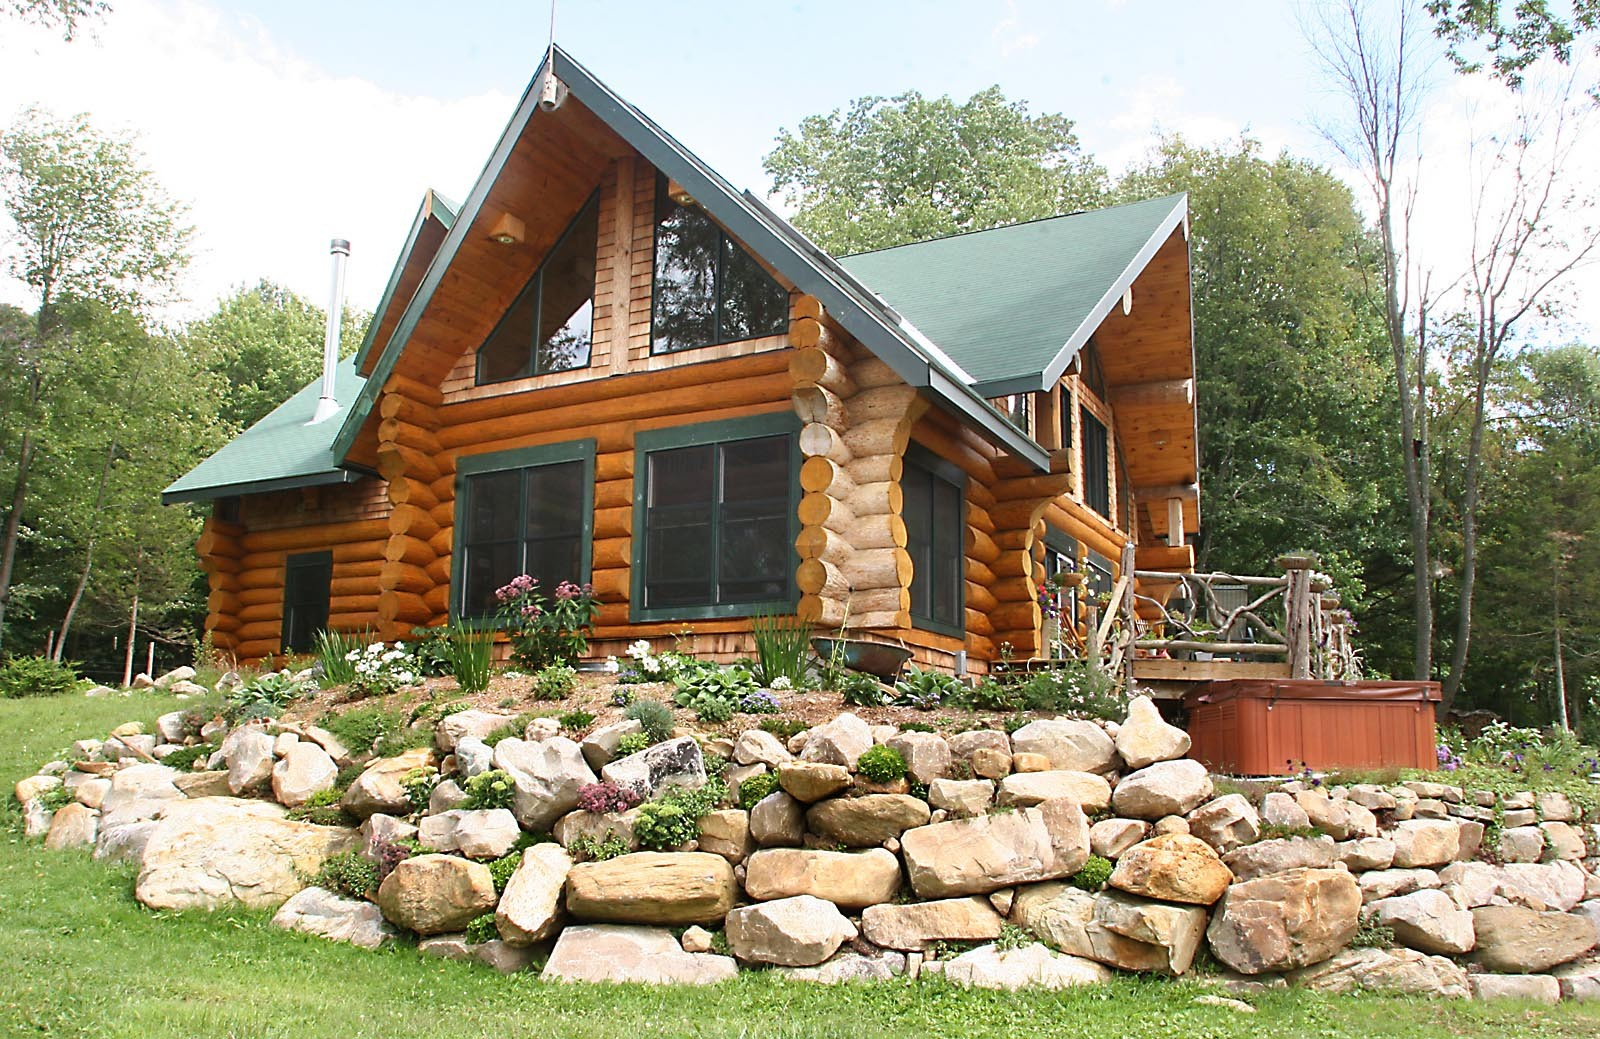 2800 Sqft Luxury Log Cabin The Log Builders